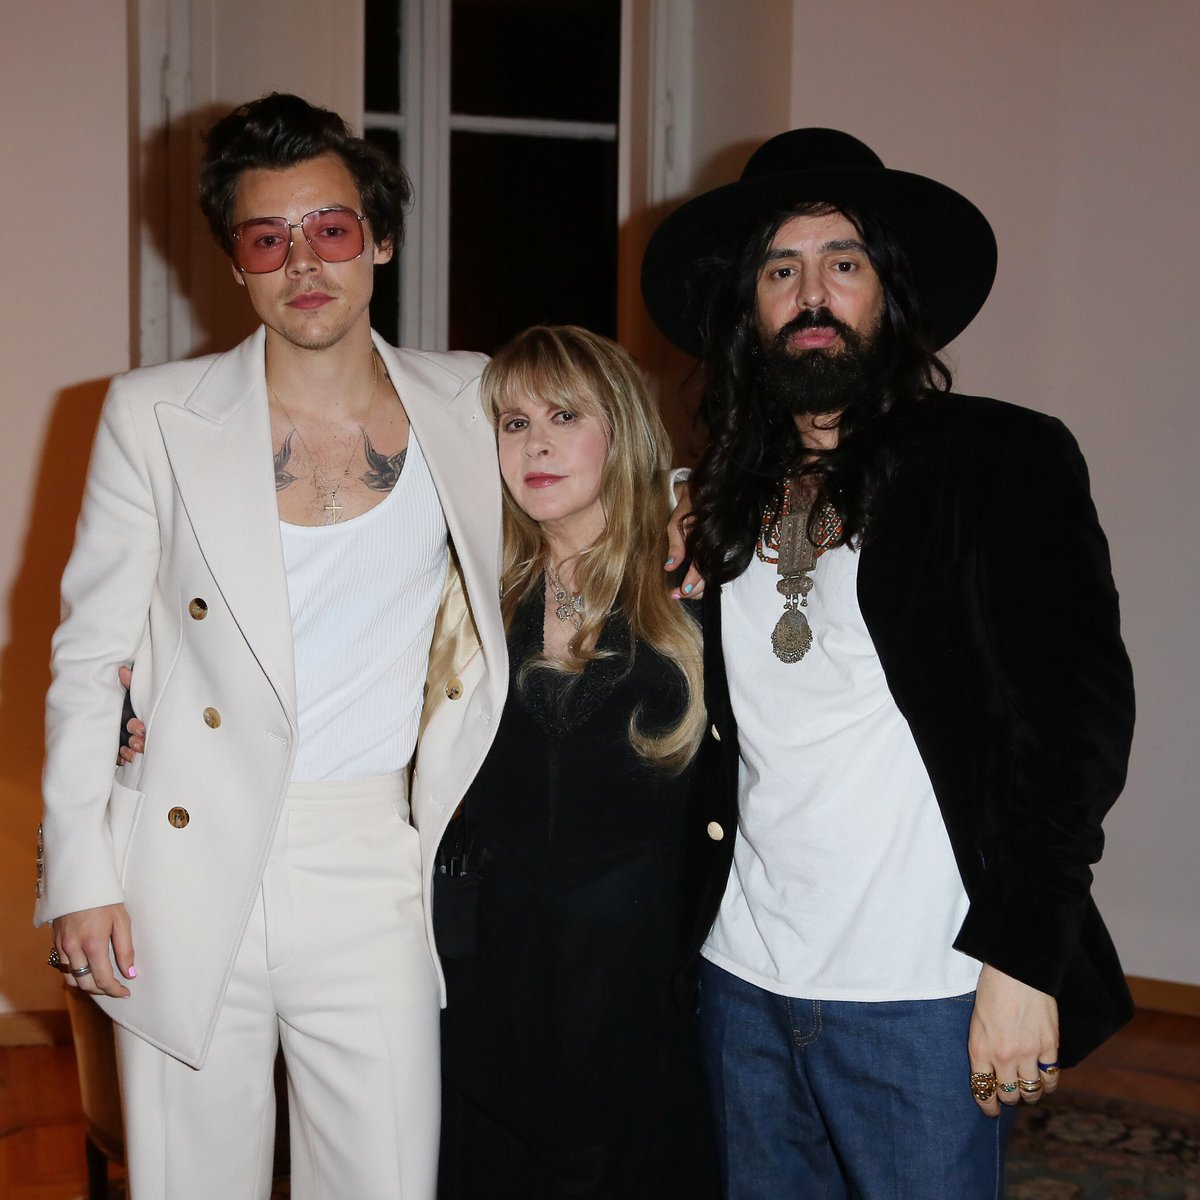 94478cb9b During the #GucciCruise20 party, #HarryStyles and #StevieNicks performed  together 'Stop Draggin' My Heart Around' and 'Landslide.'pic.twitter .com/0FLEd8A2uf